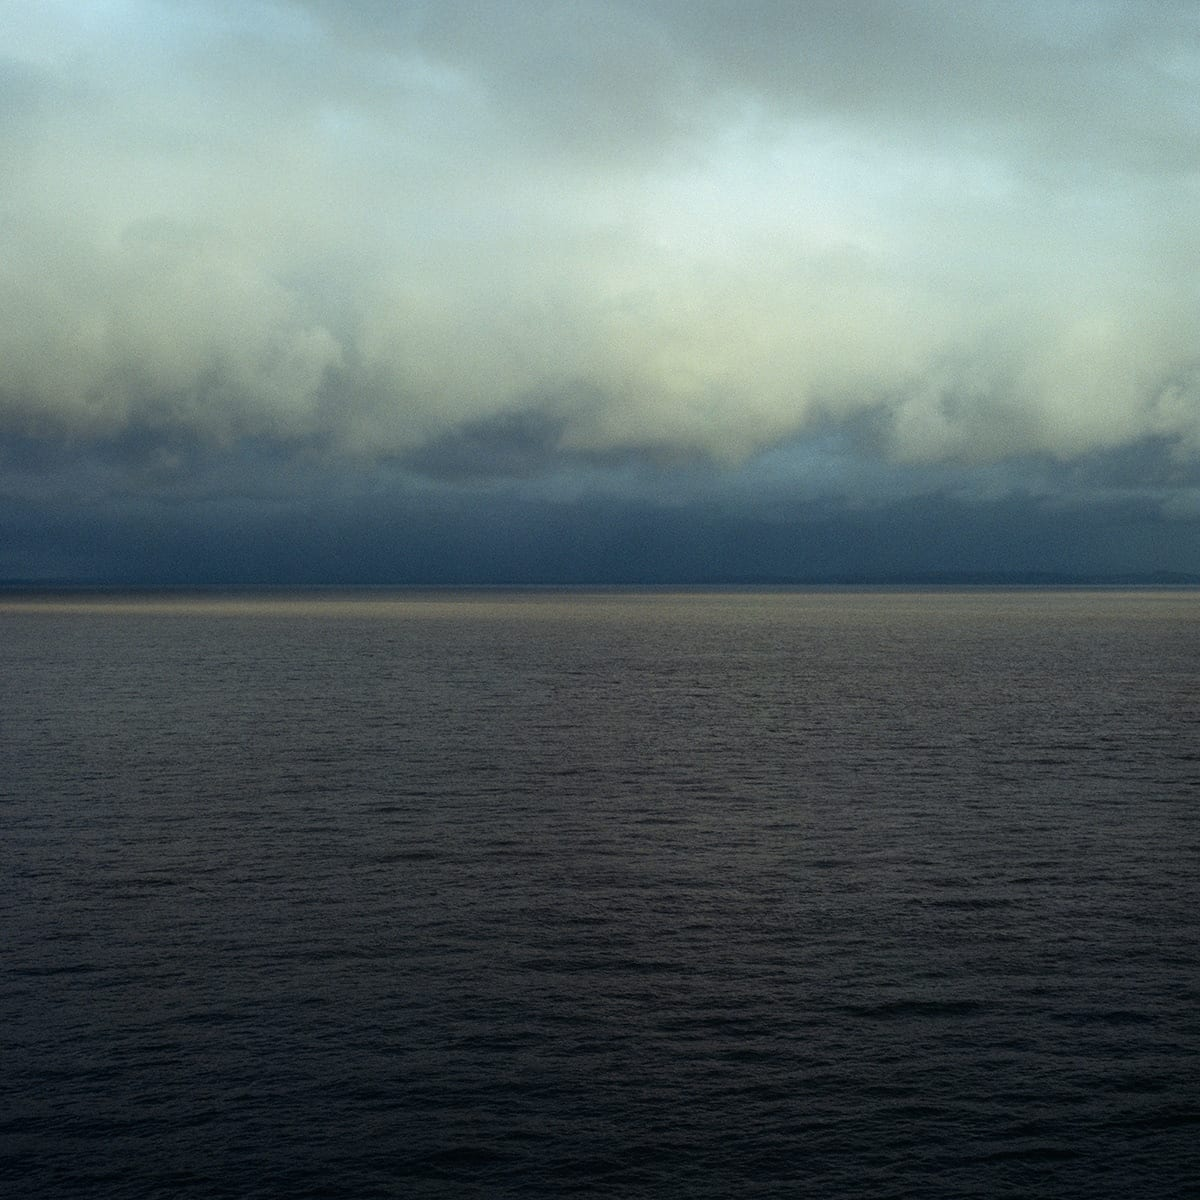 Garry Fabian Miller, Sections of England: The Sea Horizon